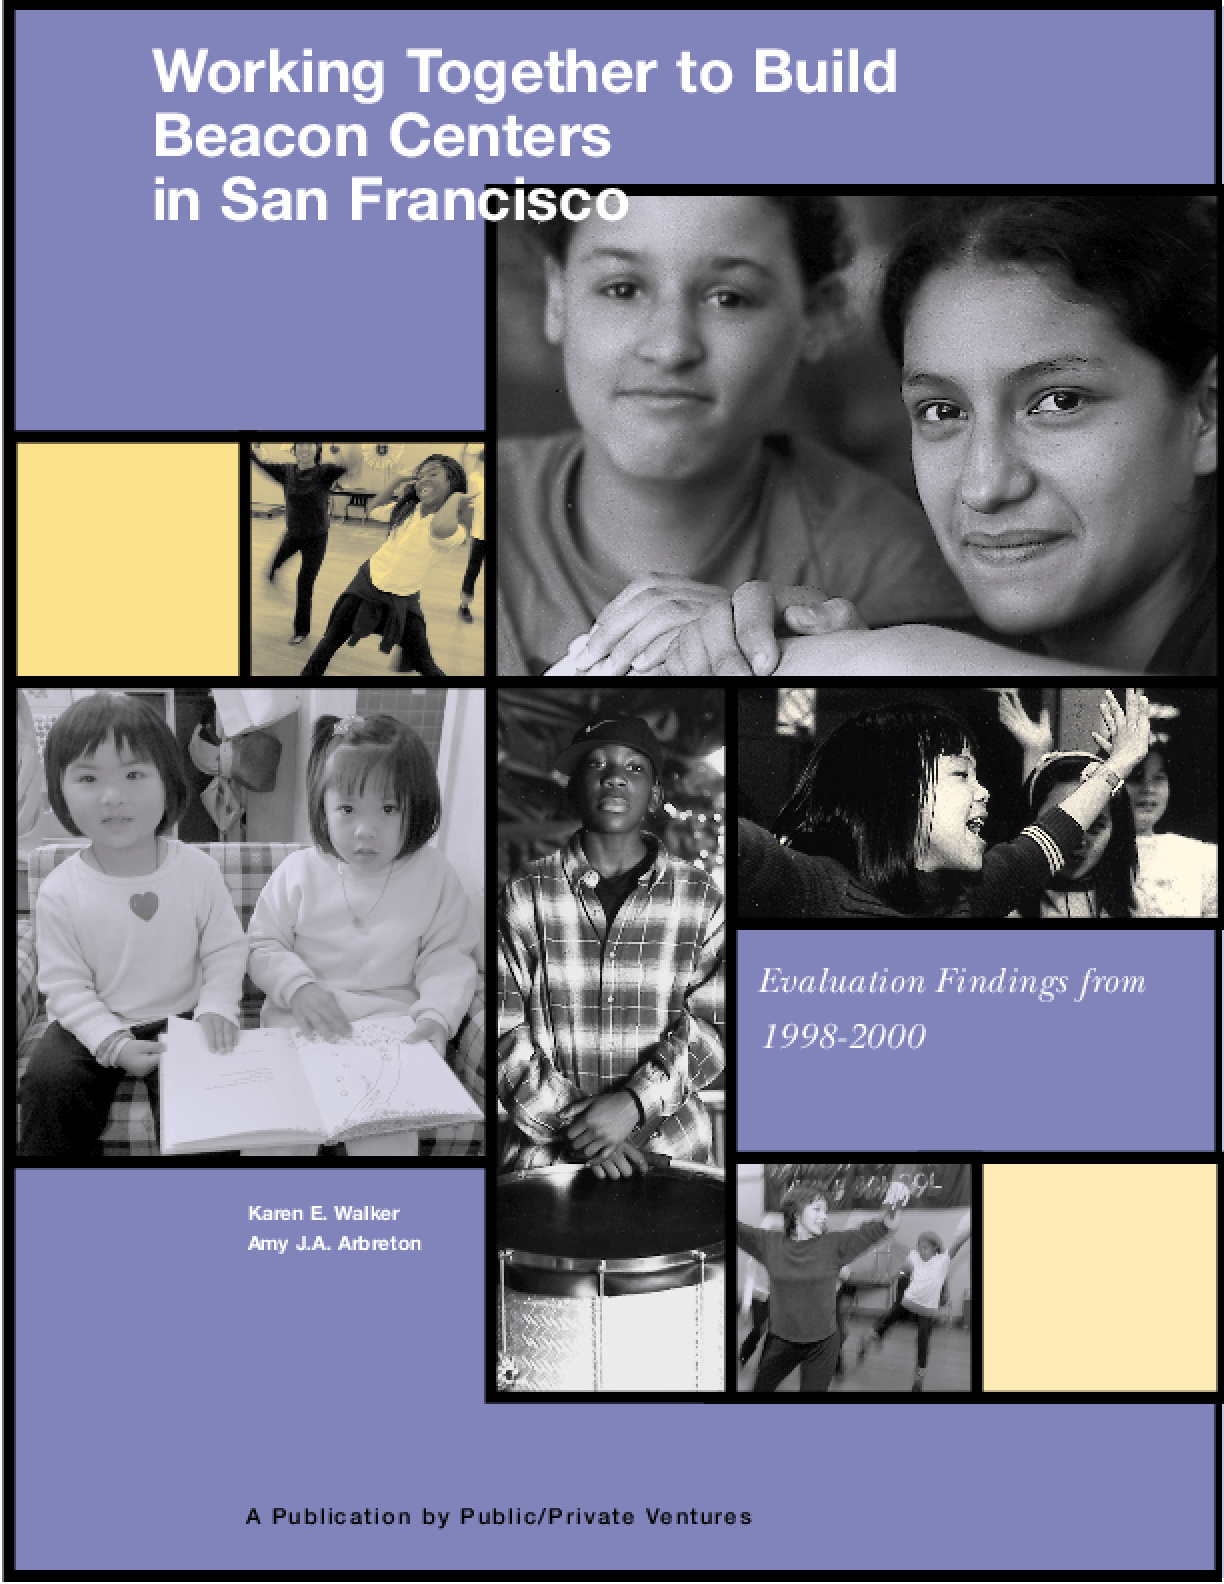 Working Together to Build Beacon Centers in San Francisco: Evaluation Findings from 1998-2000